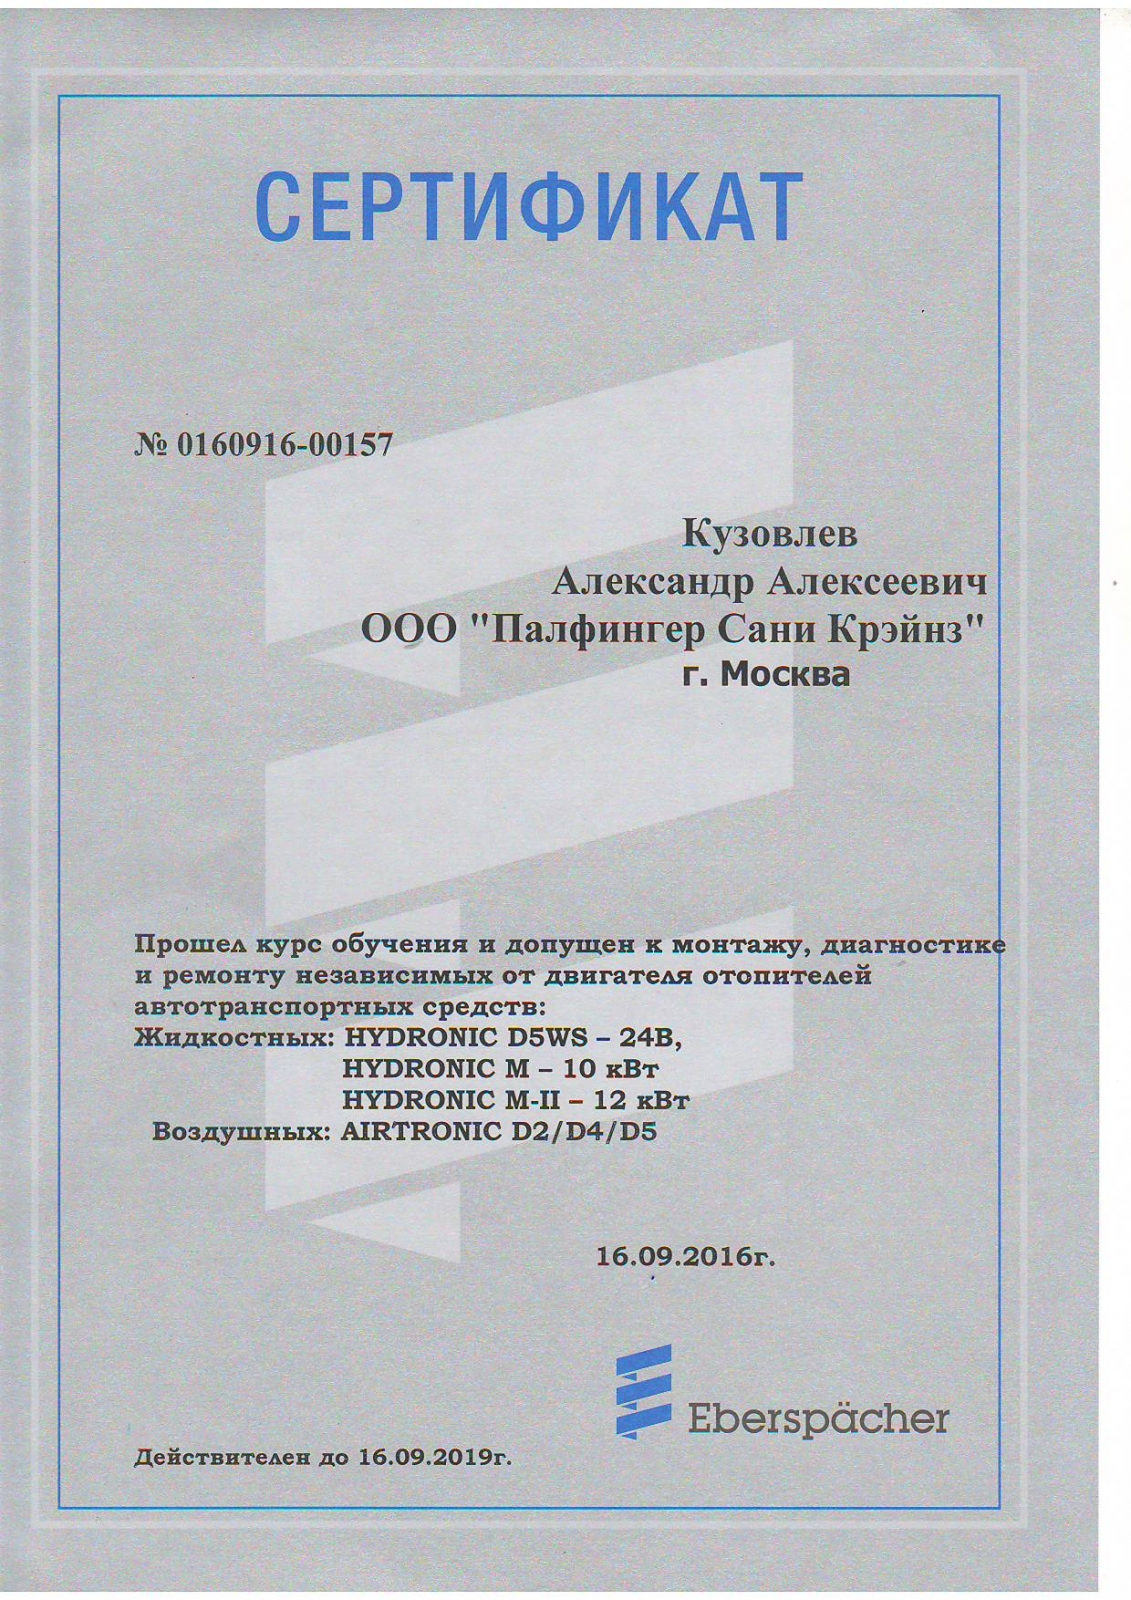 Service specialist Alexander Kuzovlev took a course on installation, diagnosis and repair of heating systems Eberspacher